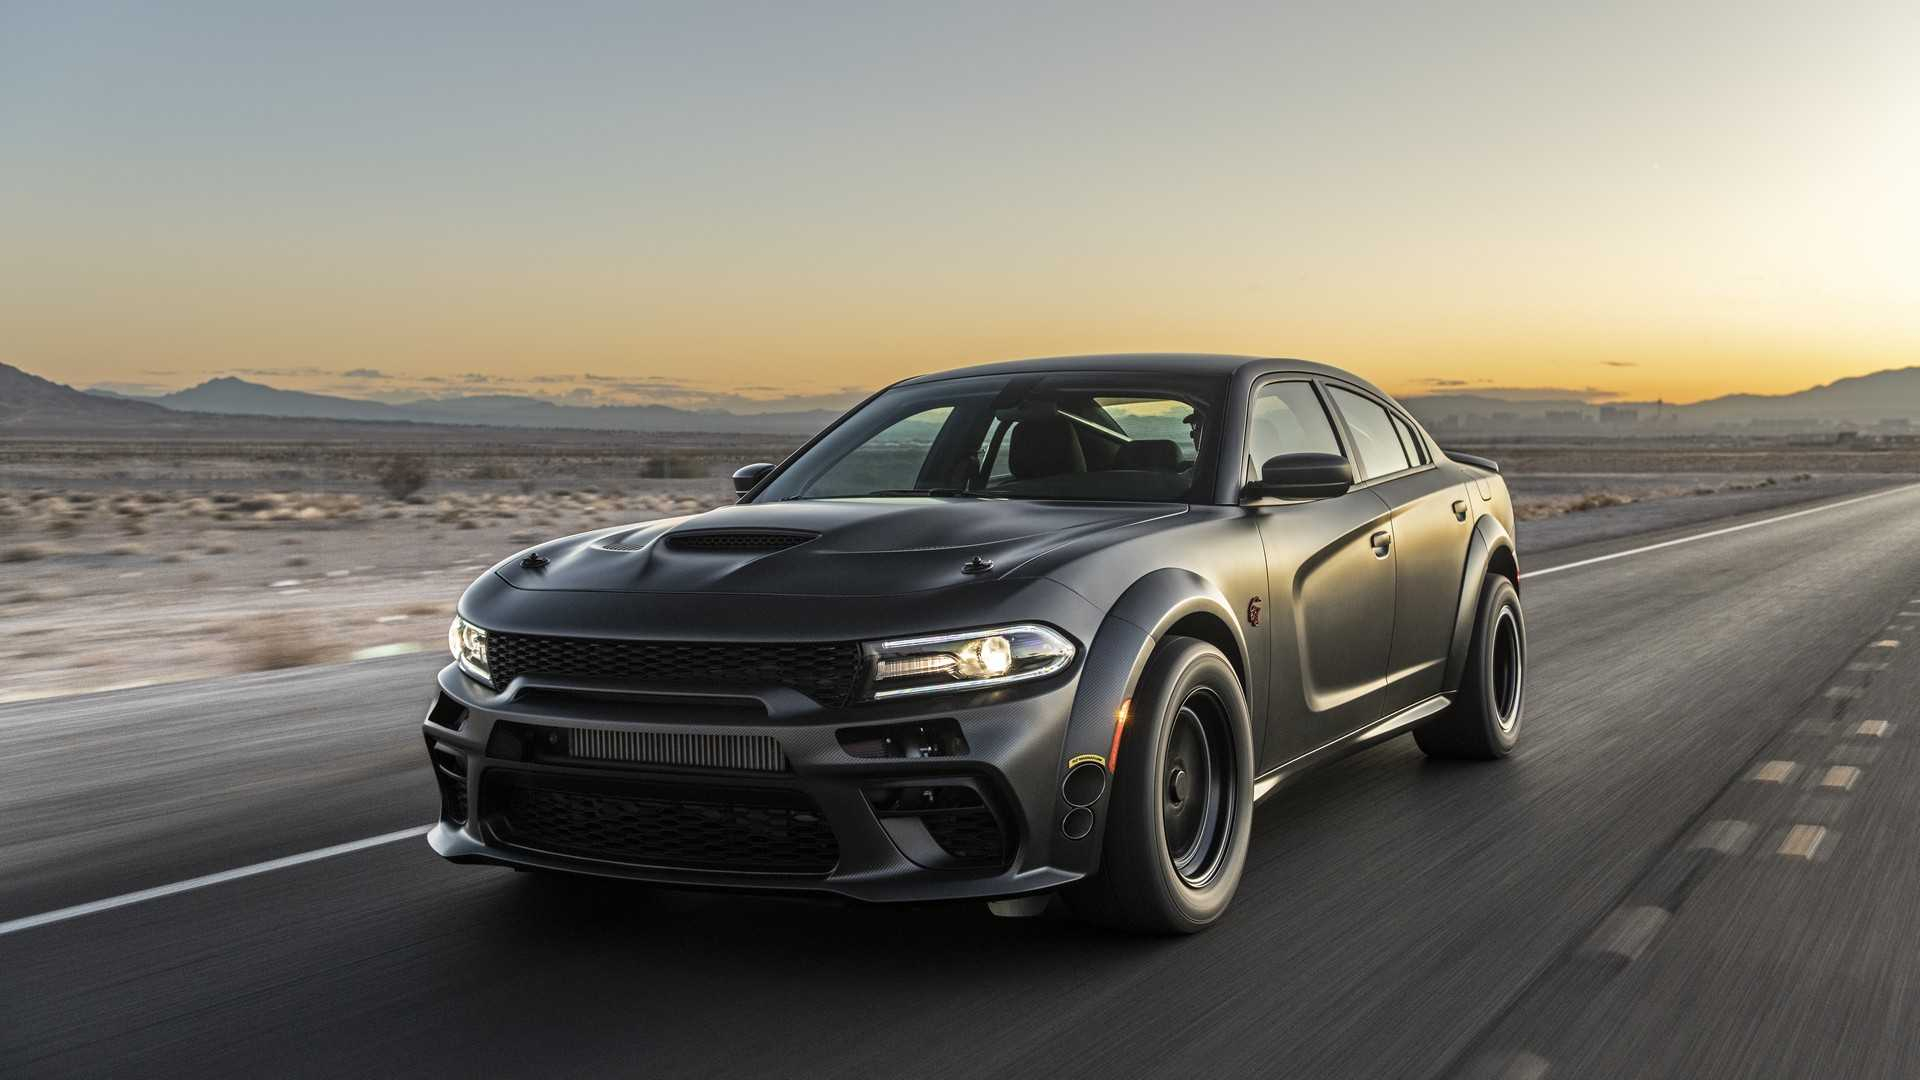 2021 Dodge Charger Review Specs And Price Wallace Chrysler Jeep Dodge Ram Blog Kore men's belts offer 40+ sizing positions to adjust with for a perfect fit. 2021 dodge charger review specs and